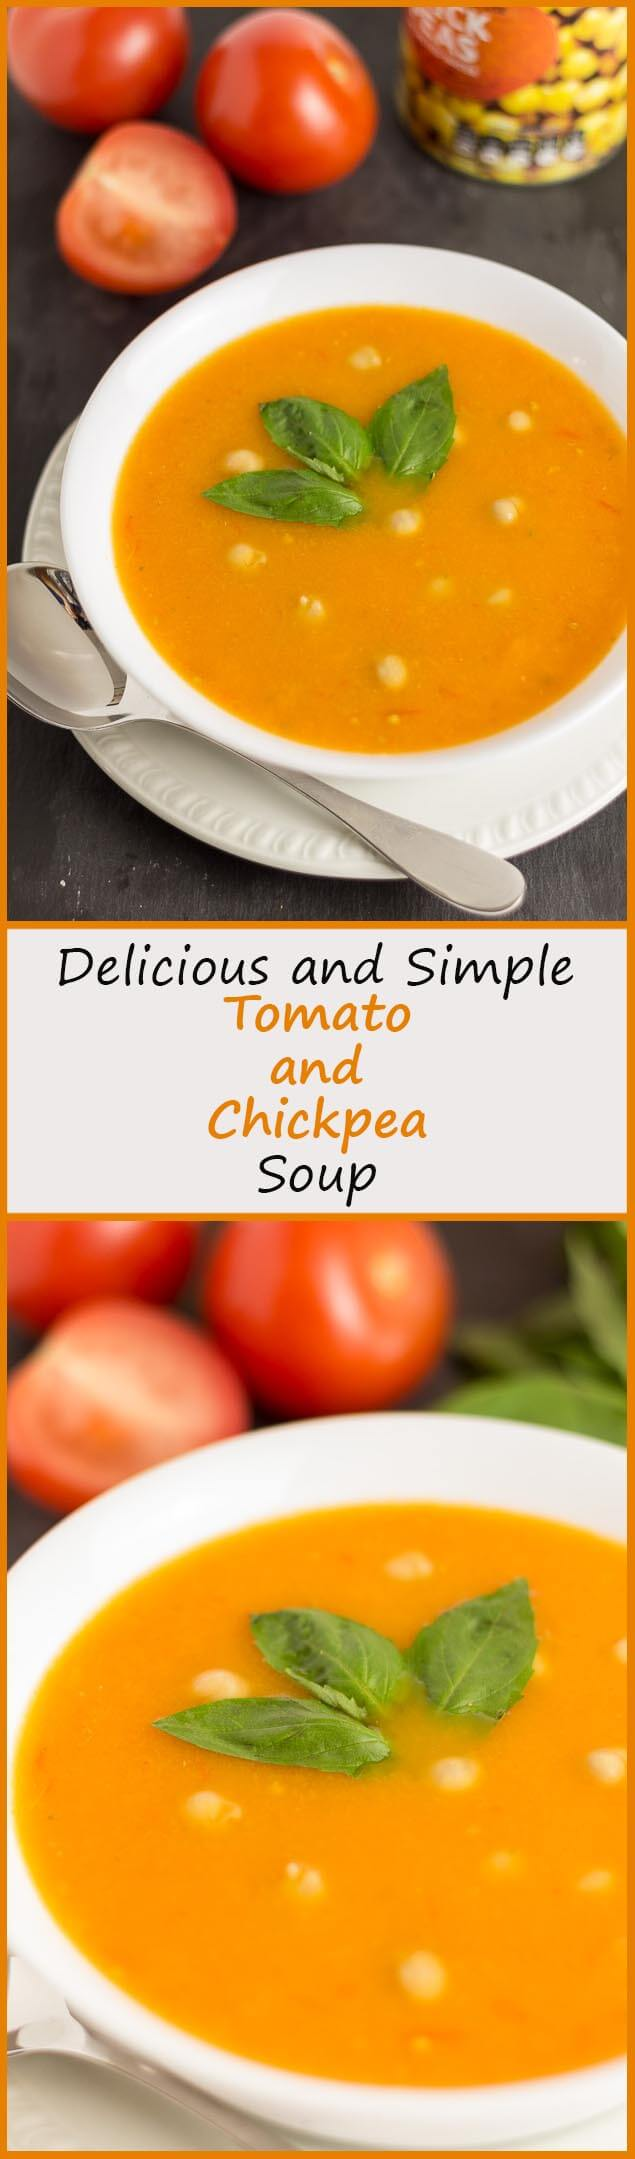 Tomato and chickpea soup is a delicious and simple, comforting and soul-warming recipe. A low cost, budget saving soup. A great recipe that you'll want to make over and over again!